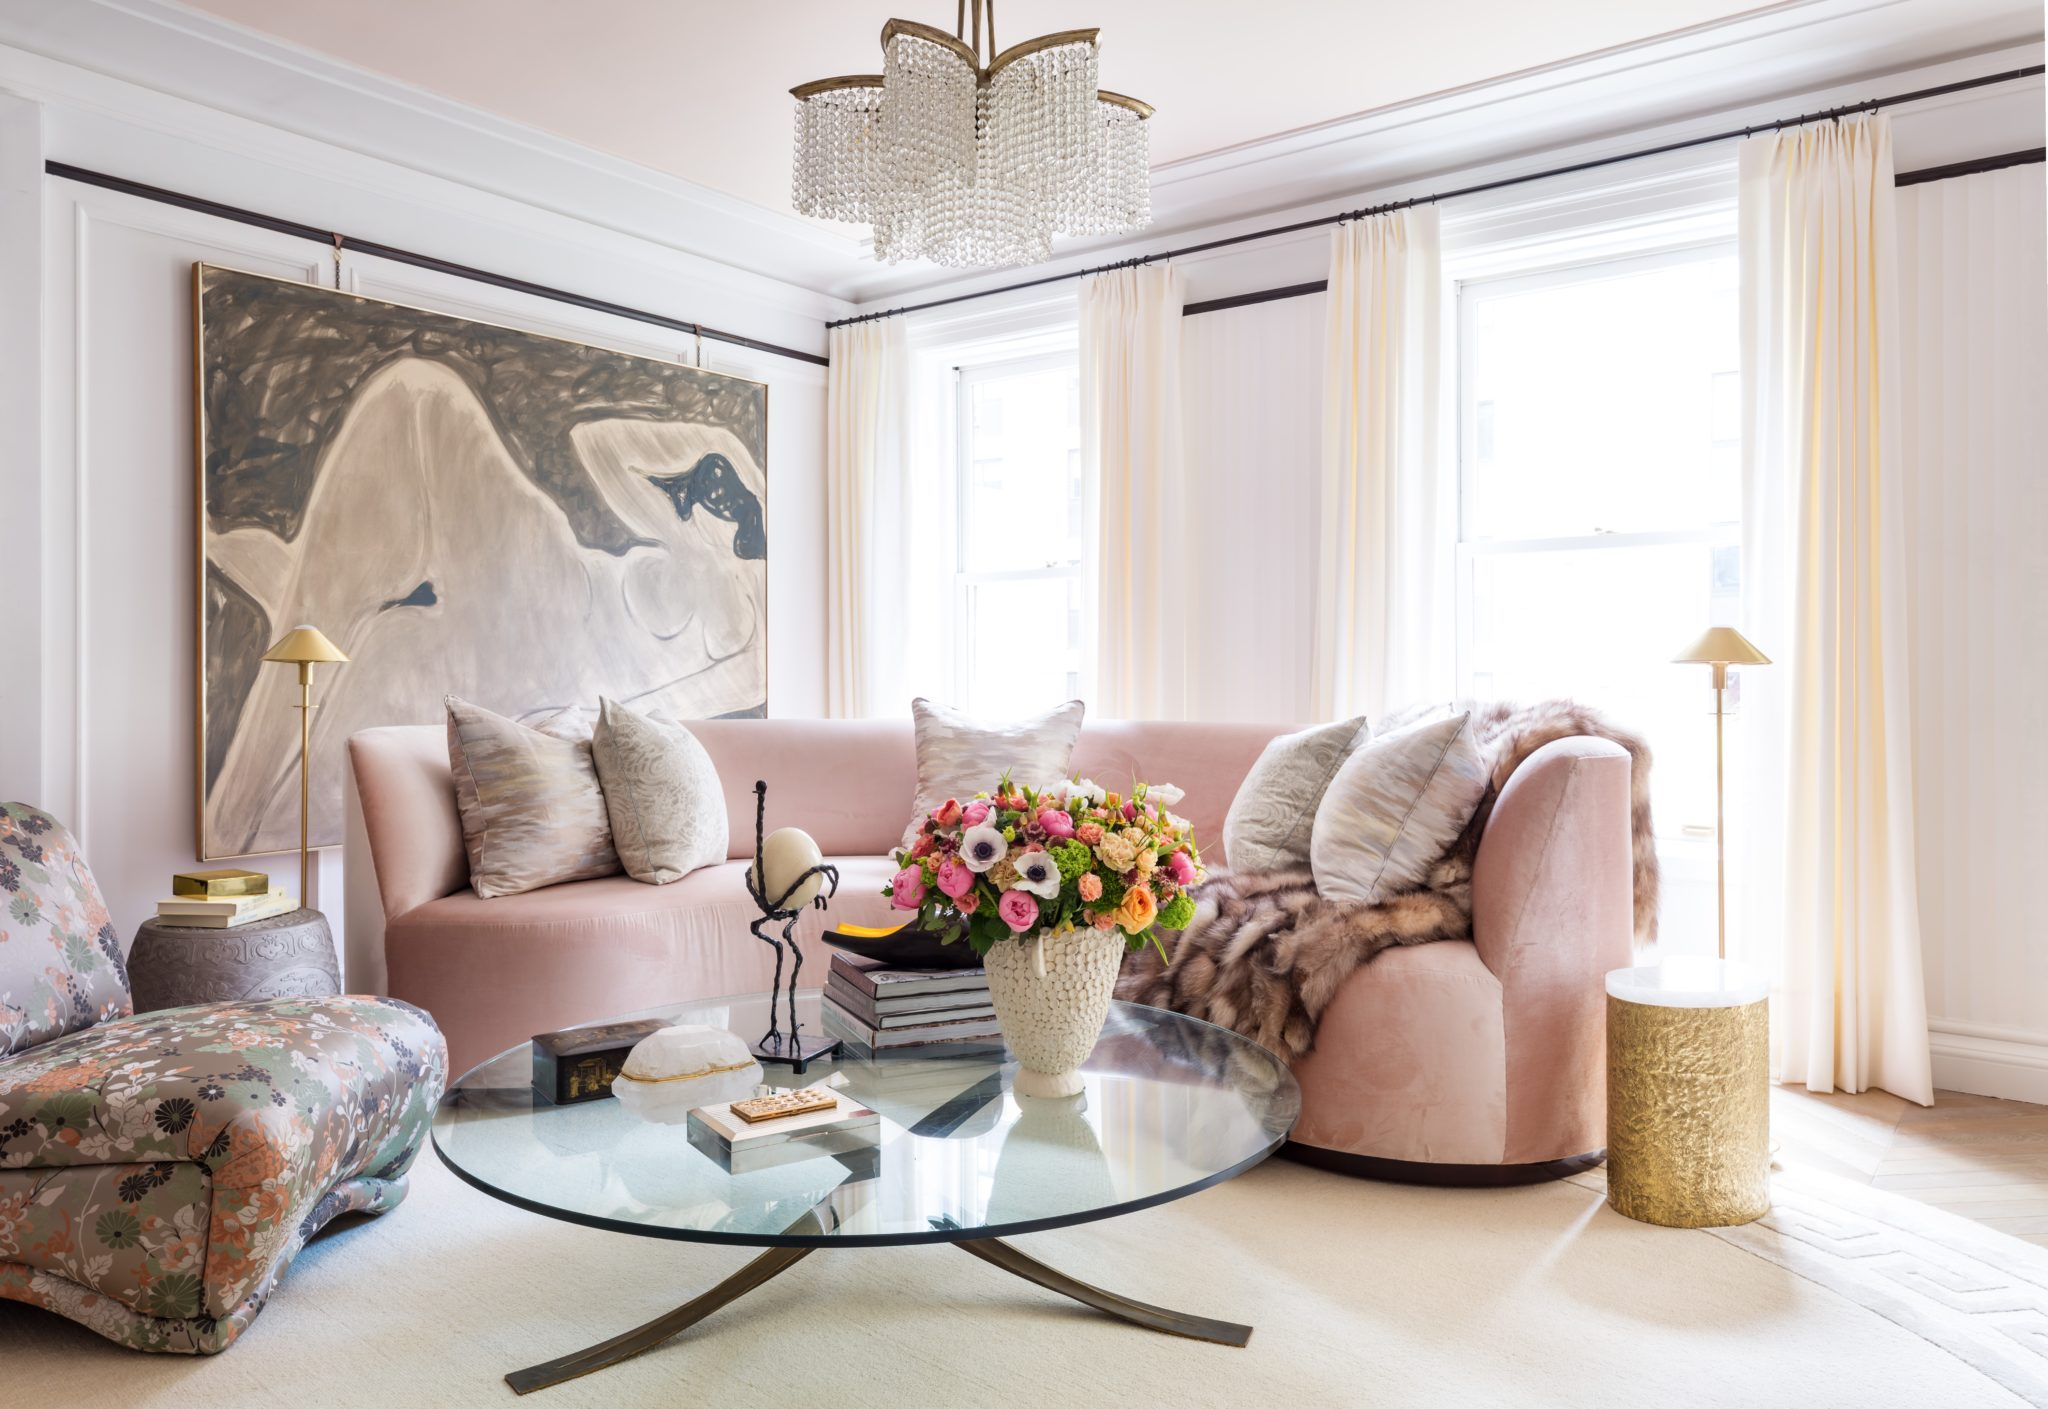 Collaborating withDaniel Kahan Architecture,Robert Passal Interior & Architectural Designrelied on pastel shades and classical elements to reflect the high-brow salons of early 20th-century Paris.